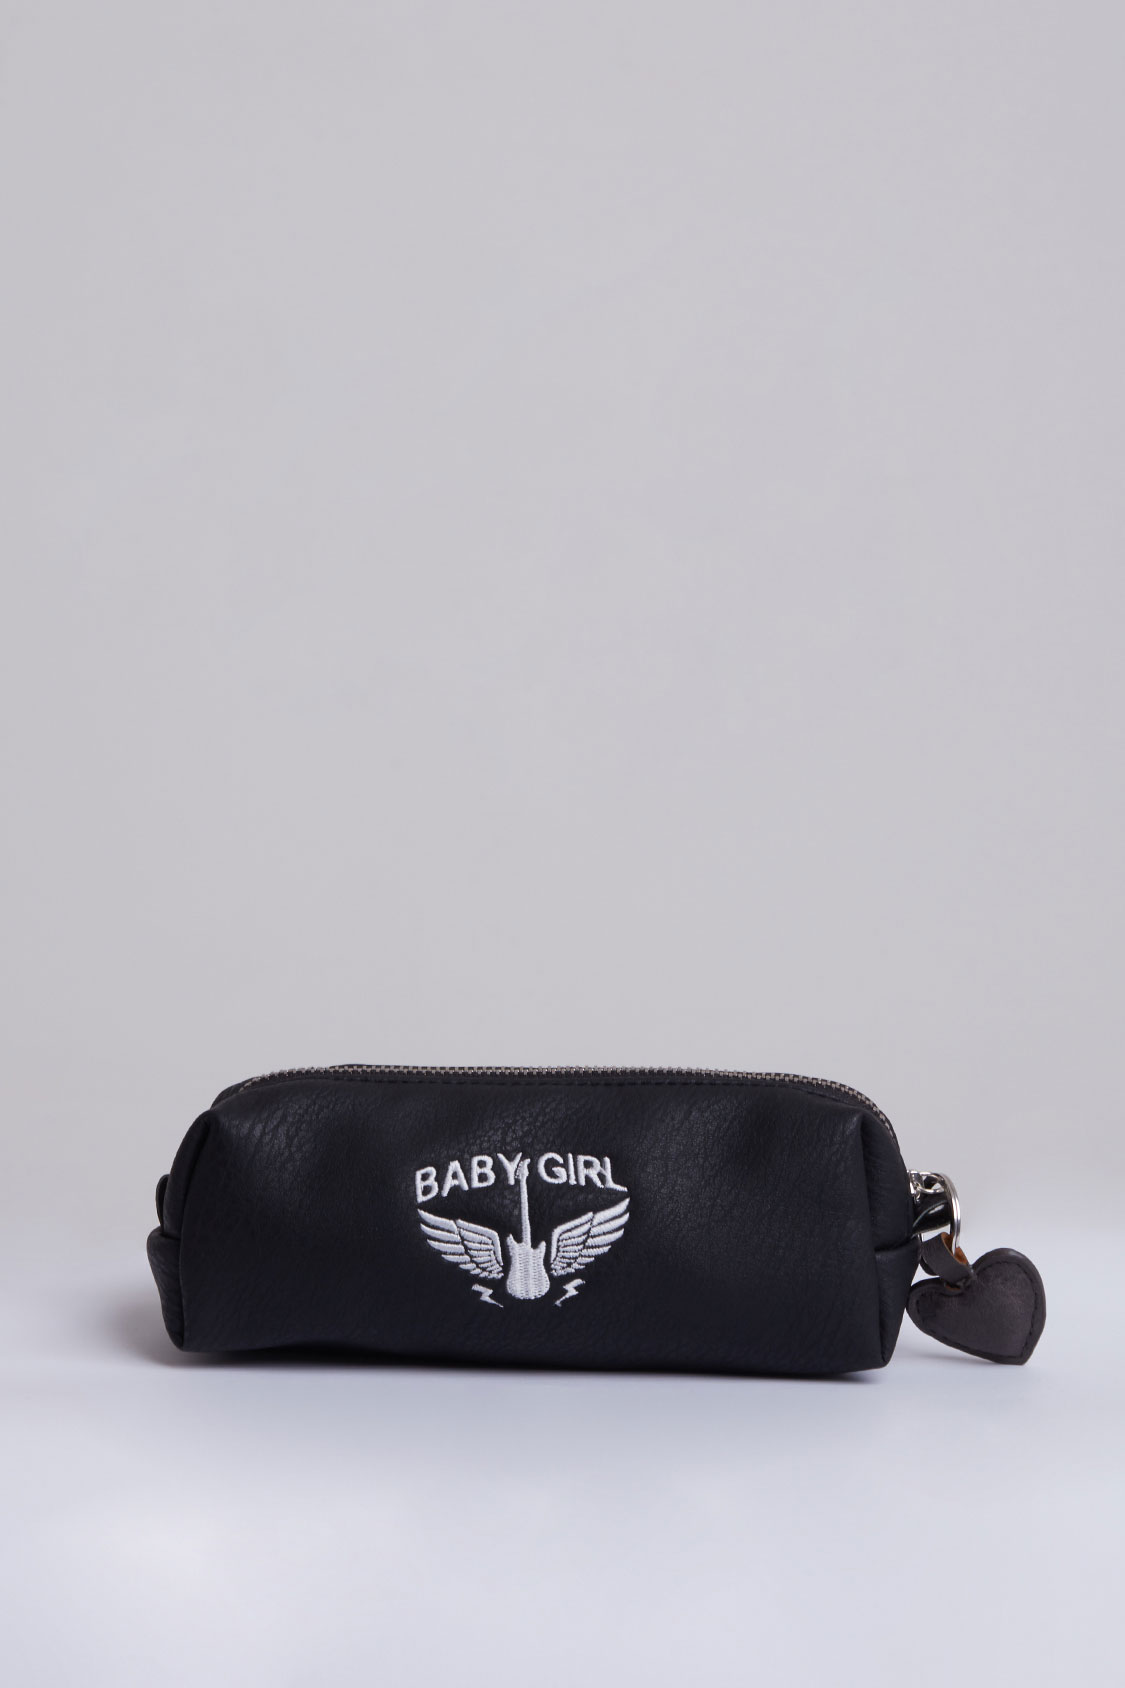 Baby Girl embroidered pencil case